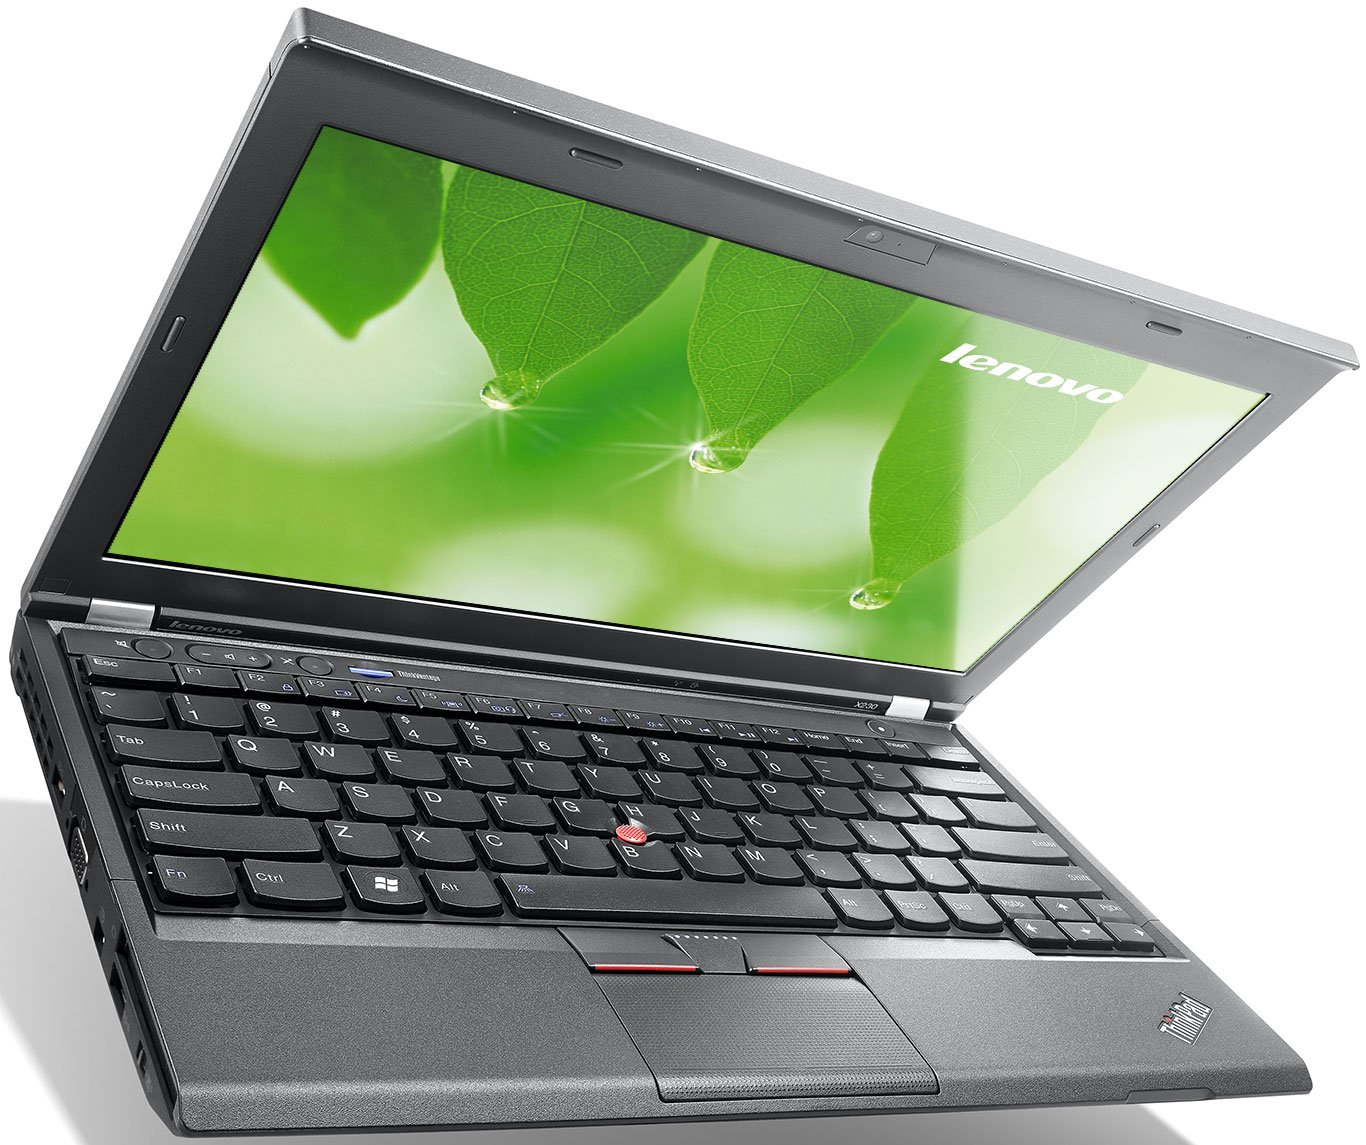 lenovo x230 drivers and software